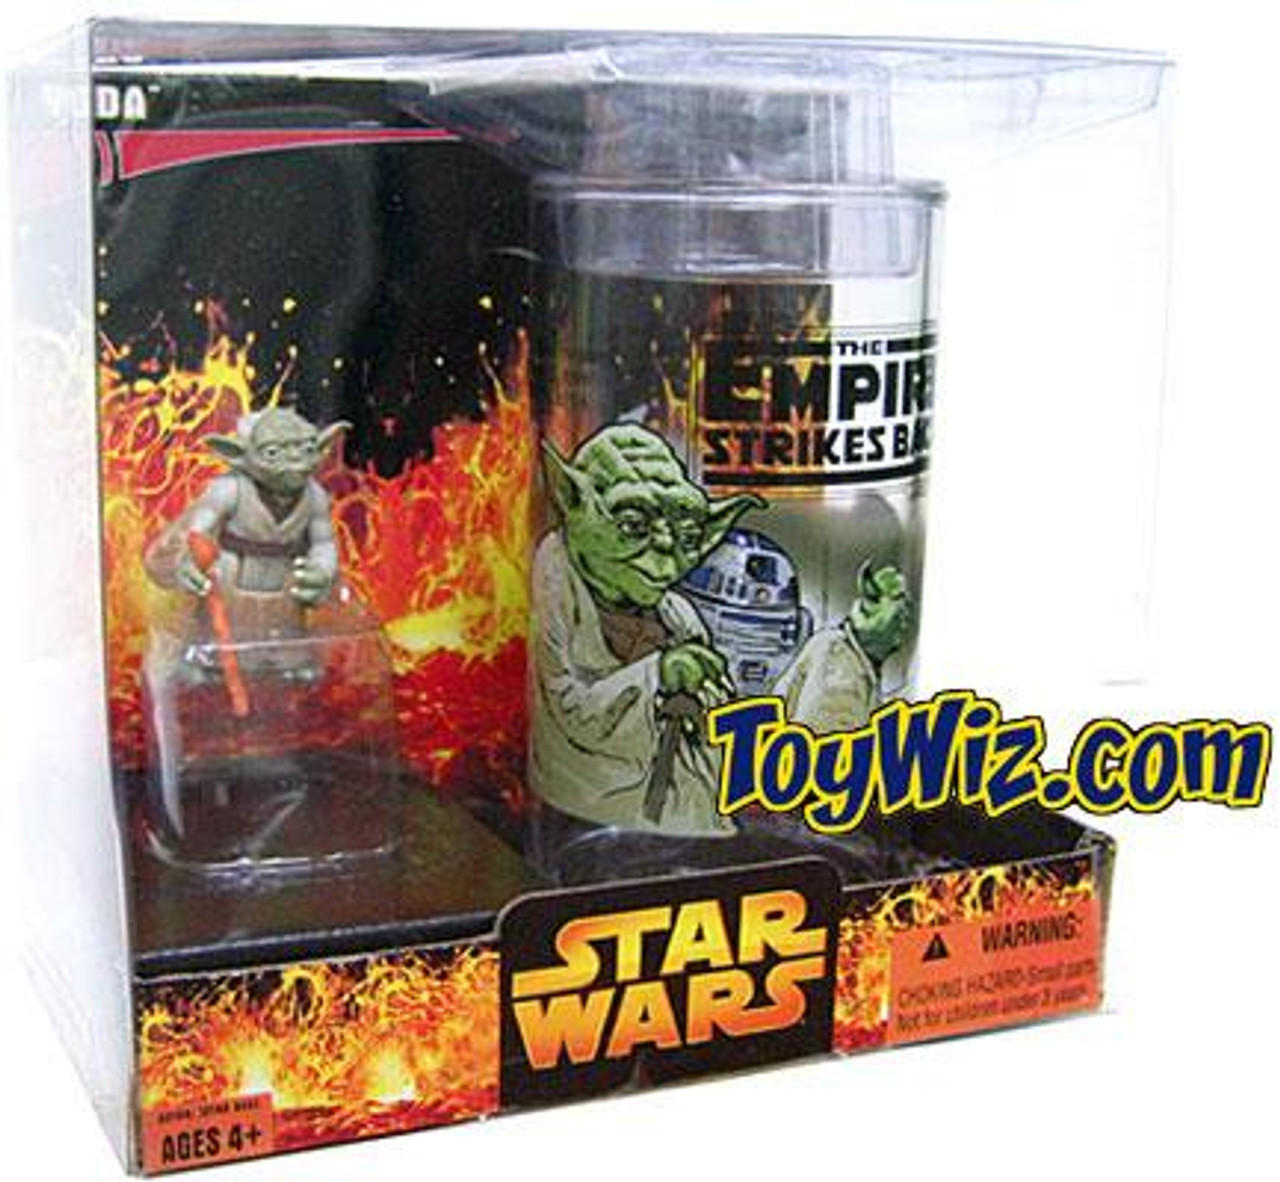 Star Wars Empire Strikes Back Yoda Collector's Cup & Figure